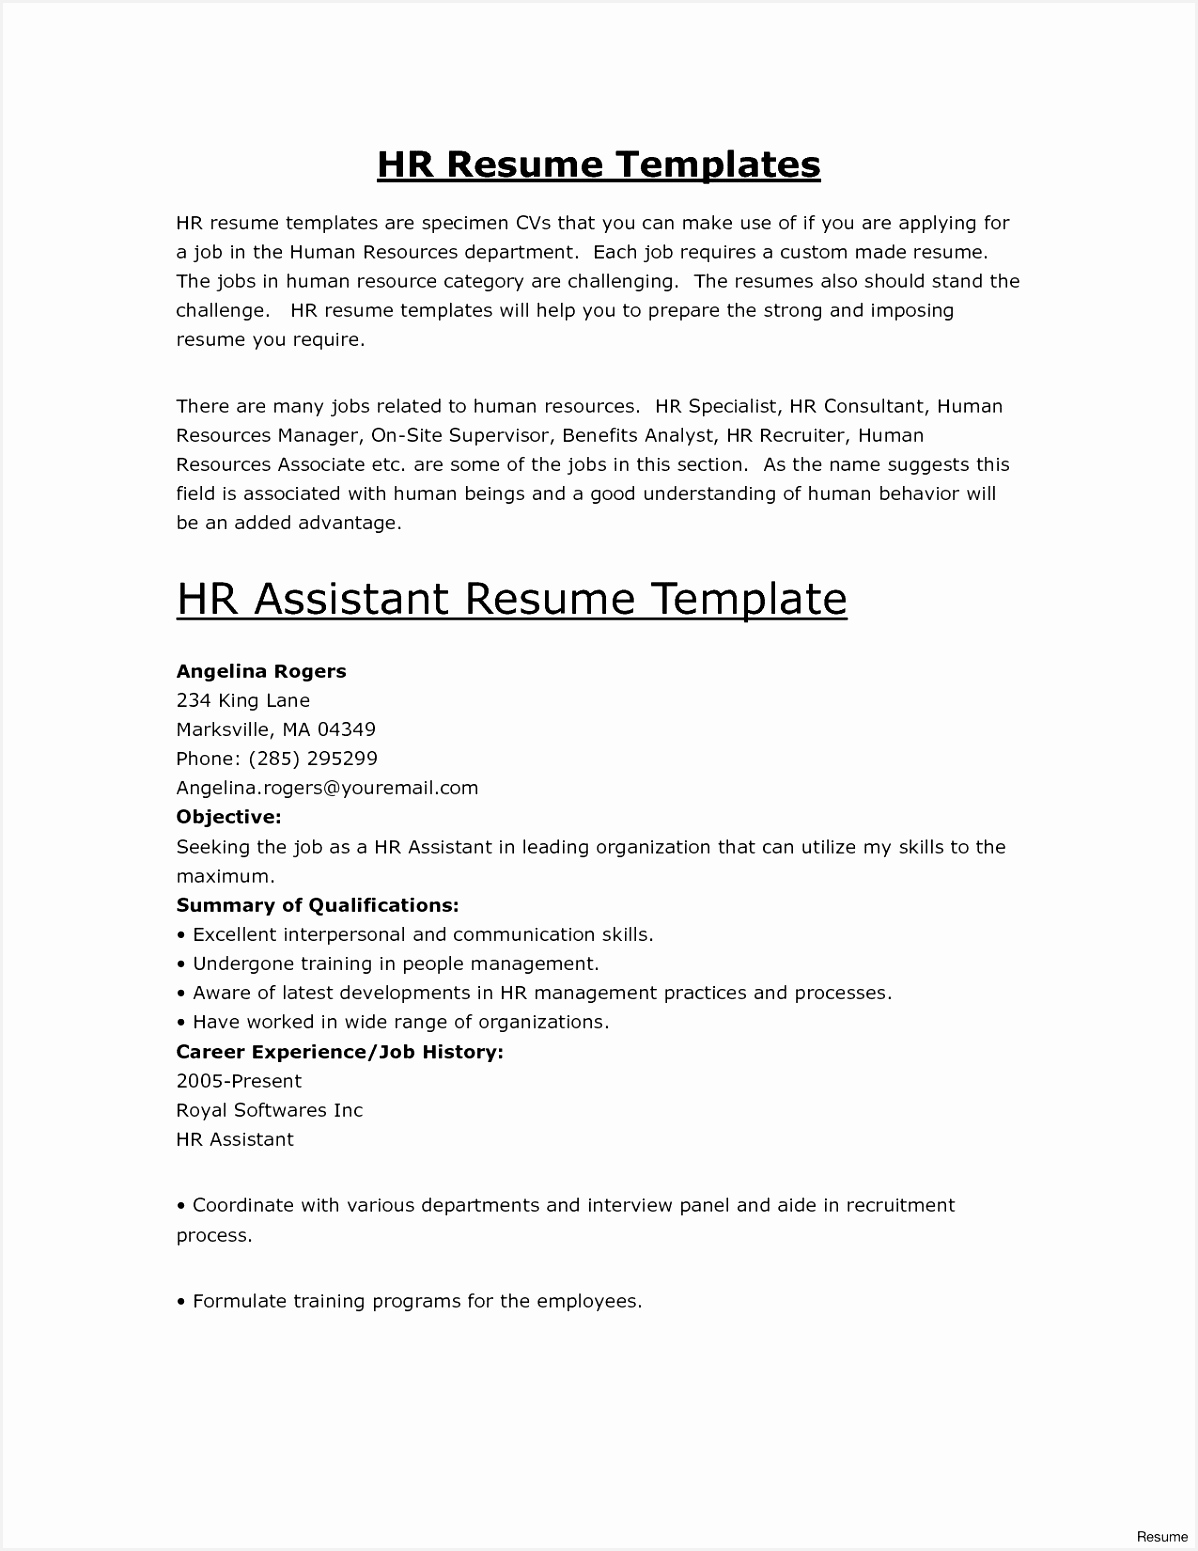 Examples Resumes for Jobs A0k4j Inspirational Example Job Resume Beautiful Luxury Examples Resumes Ecologist Of Examples Resumes for Jobs J0iah Inspirational 46 Ideal Resume Examples for Jobs Od U – Resume Samples